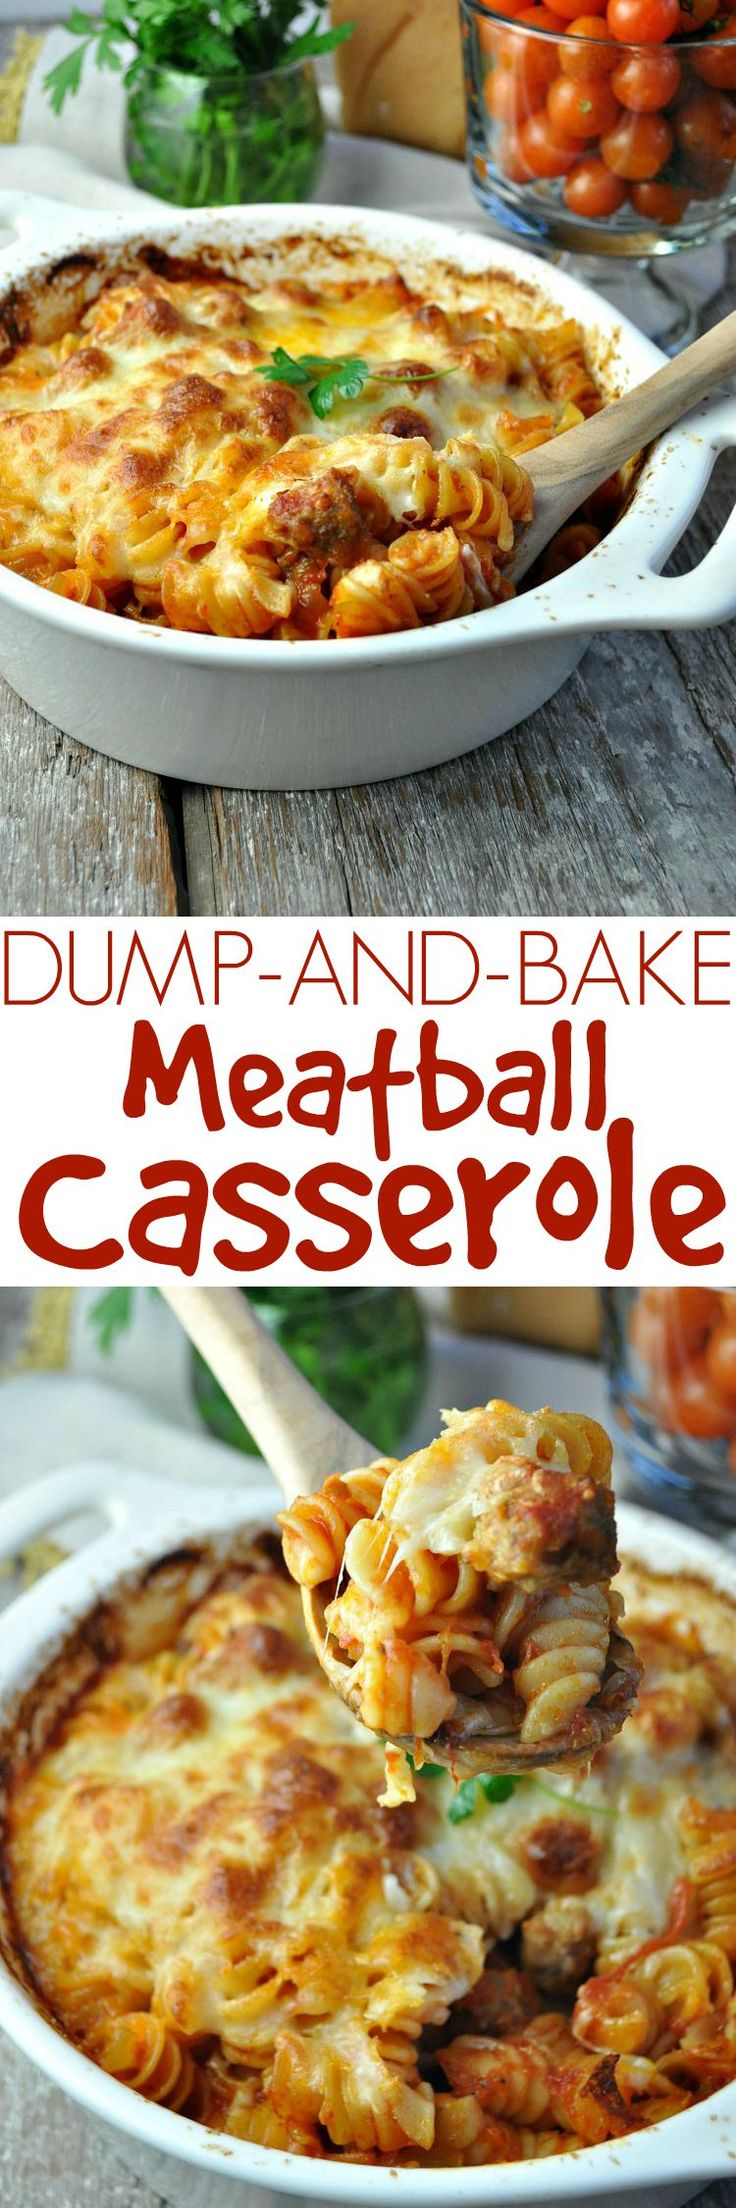 dump and bake meatball casserole! (30 minutes at 425)